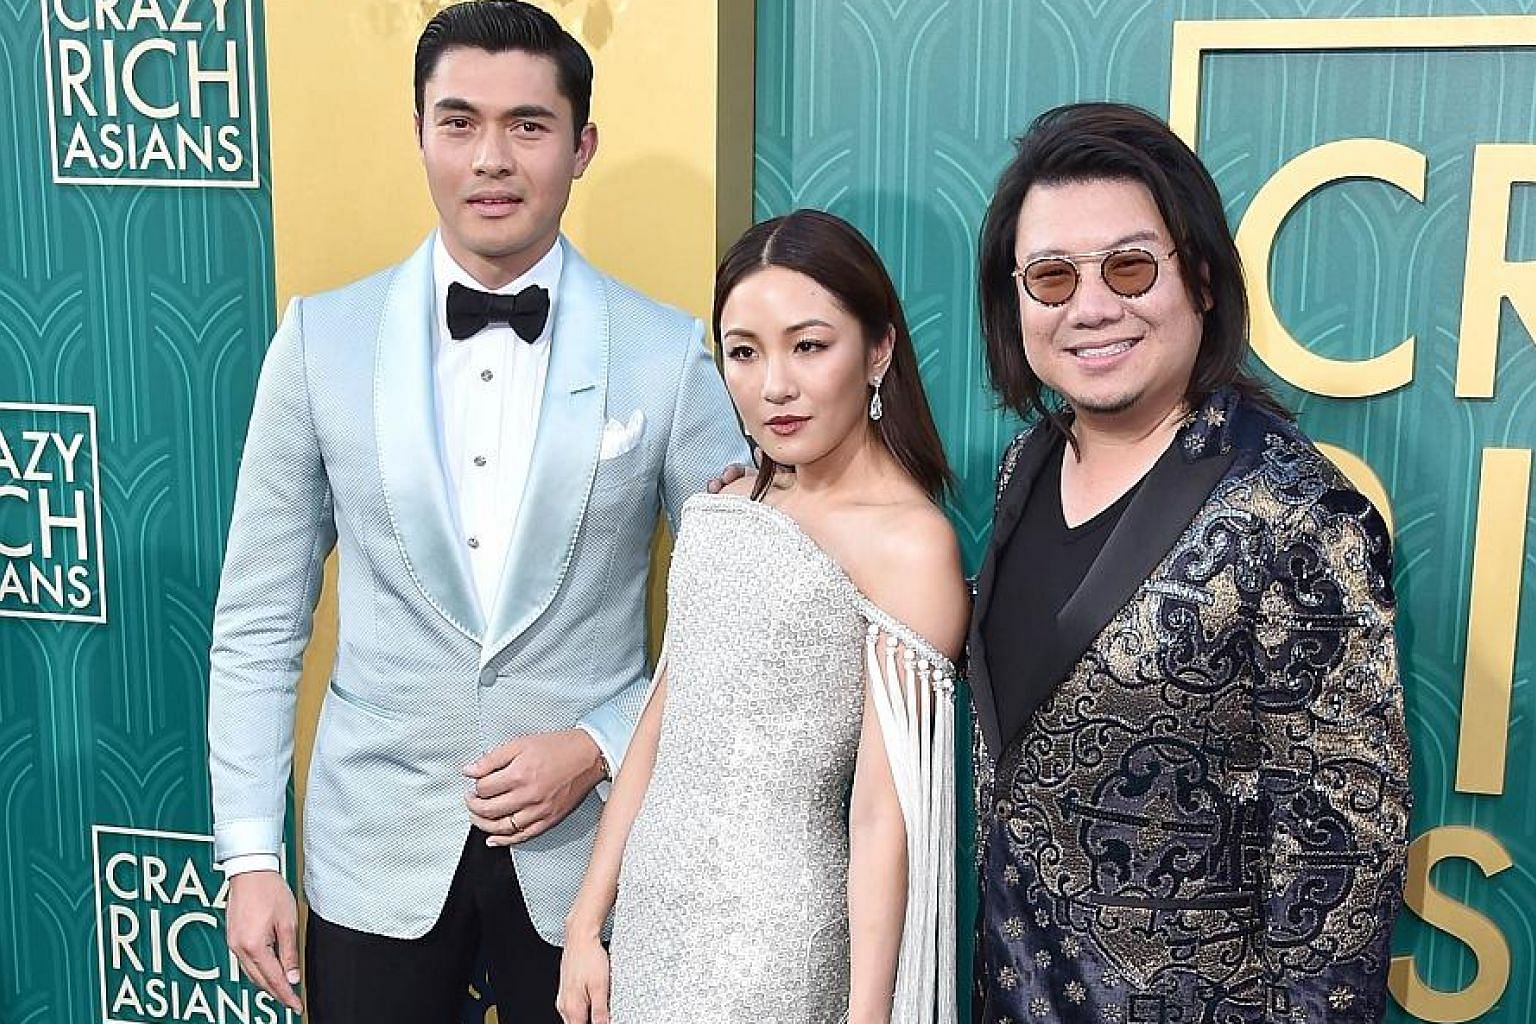 Author Kevin Kwan (far right), with actors Henry Golding and Constance Wu, at the premiere of Crazy Rich Asians in Hollywood, California, on Aug 7.